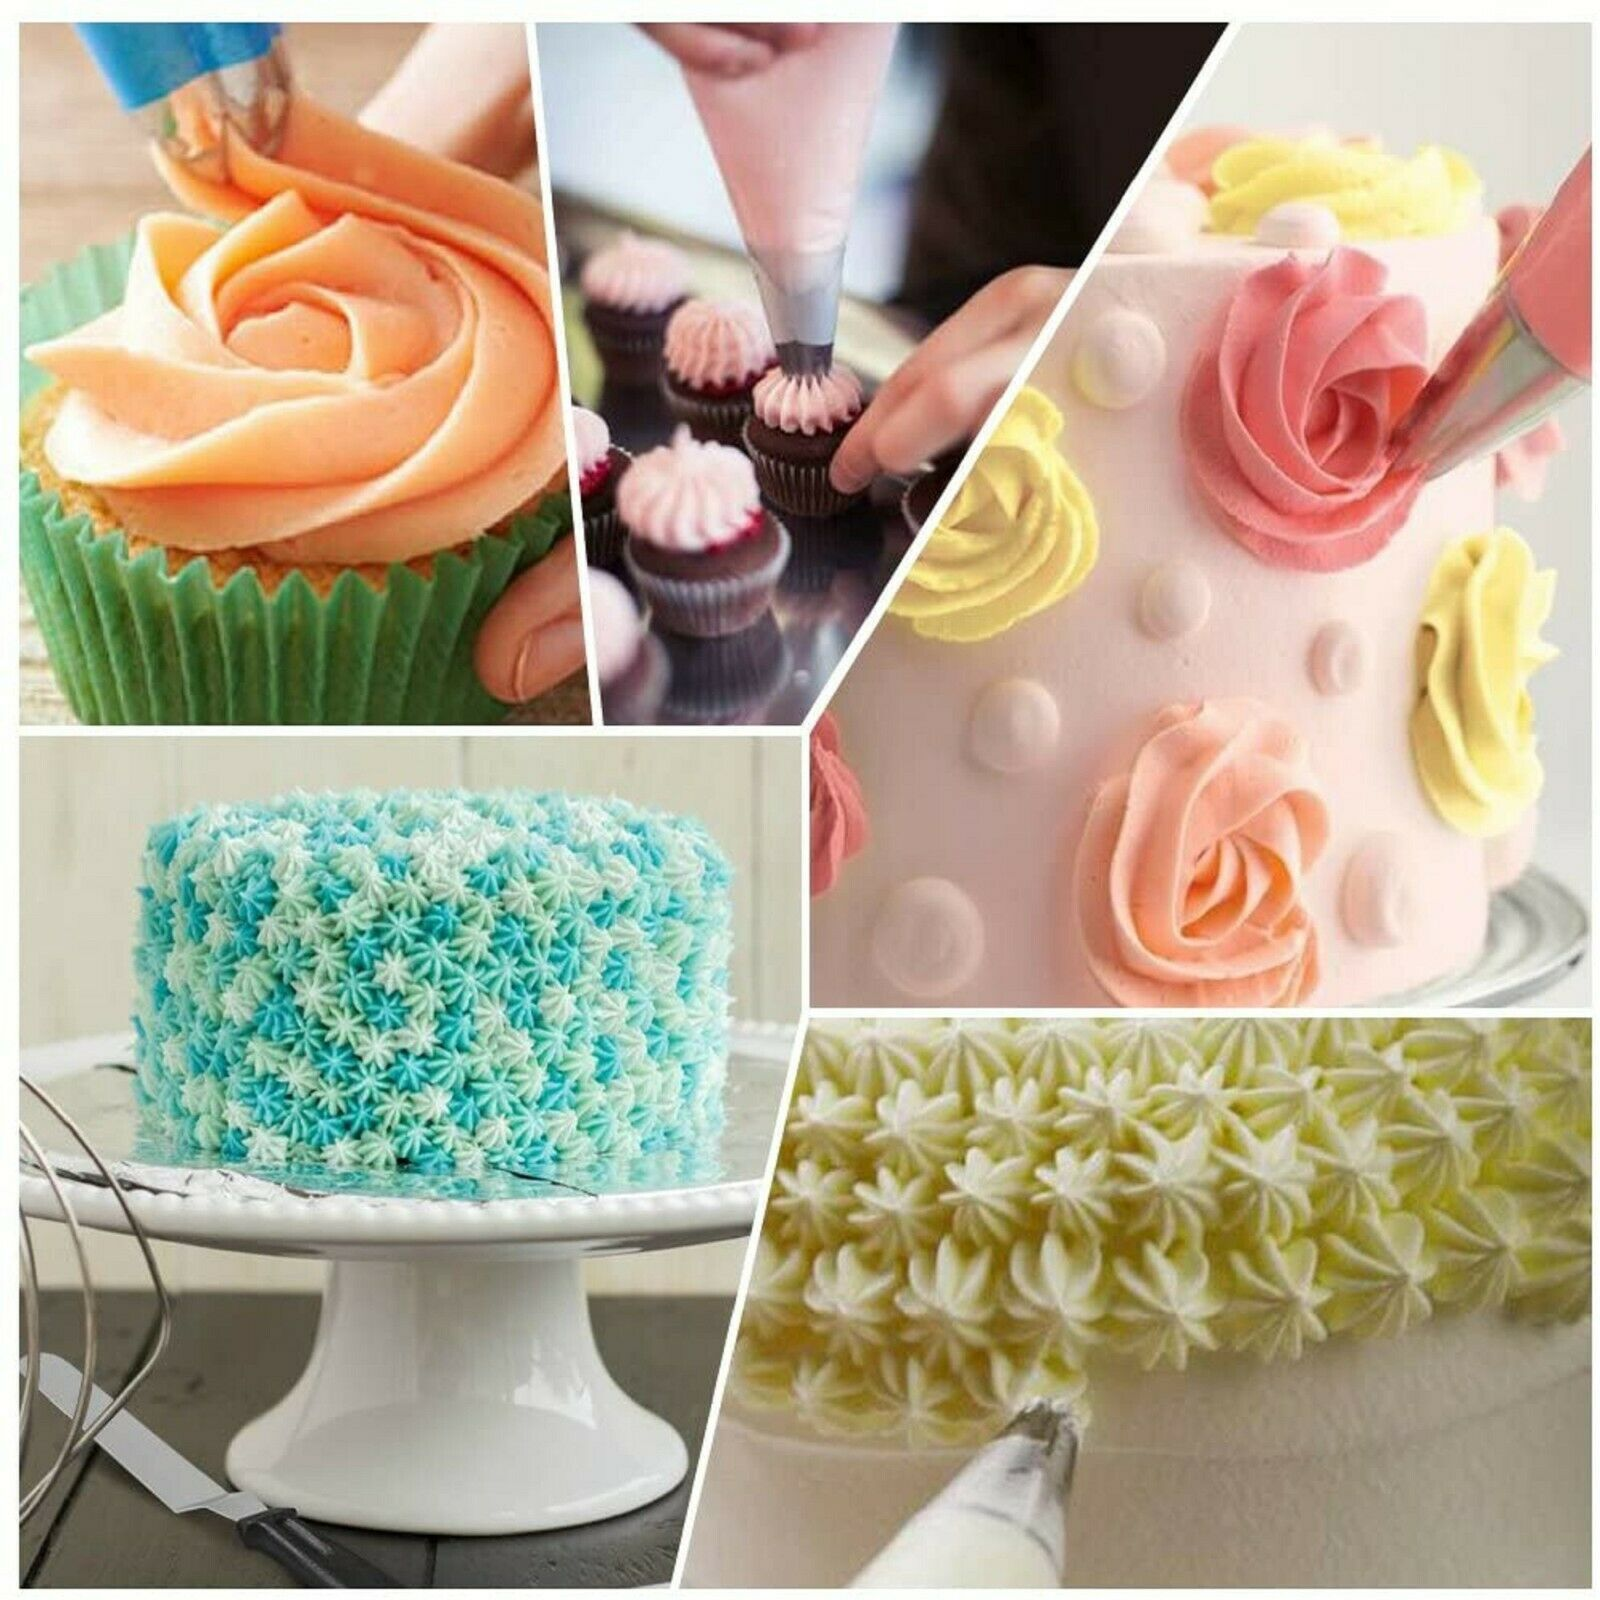 Primary image for 24 pcs cake decorating kit 1silicone icing pen,3 cake molds piping bag icing pen